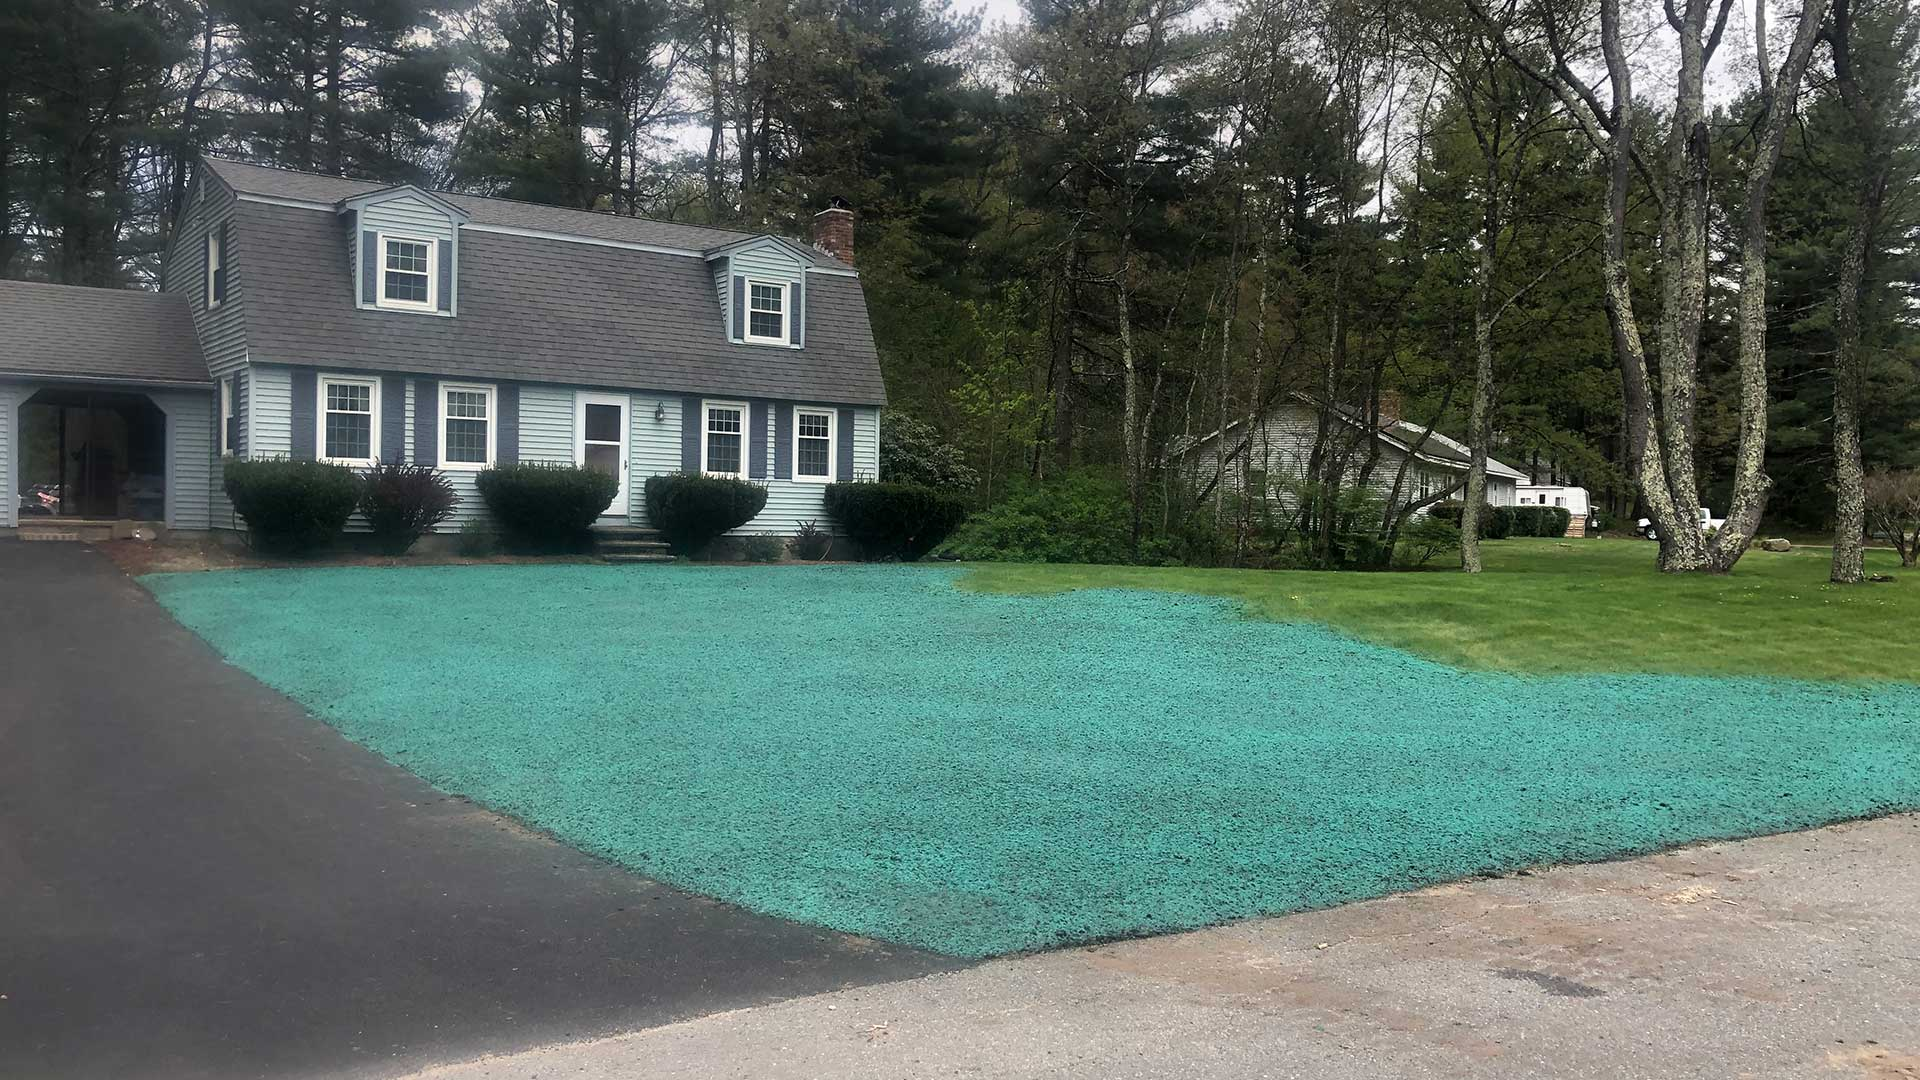 This lawn in Concord, MA has been hydroseeded.